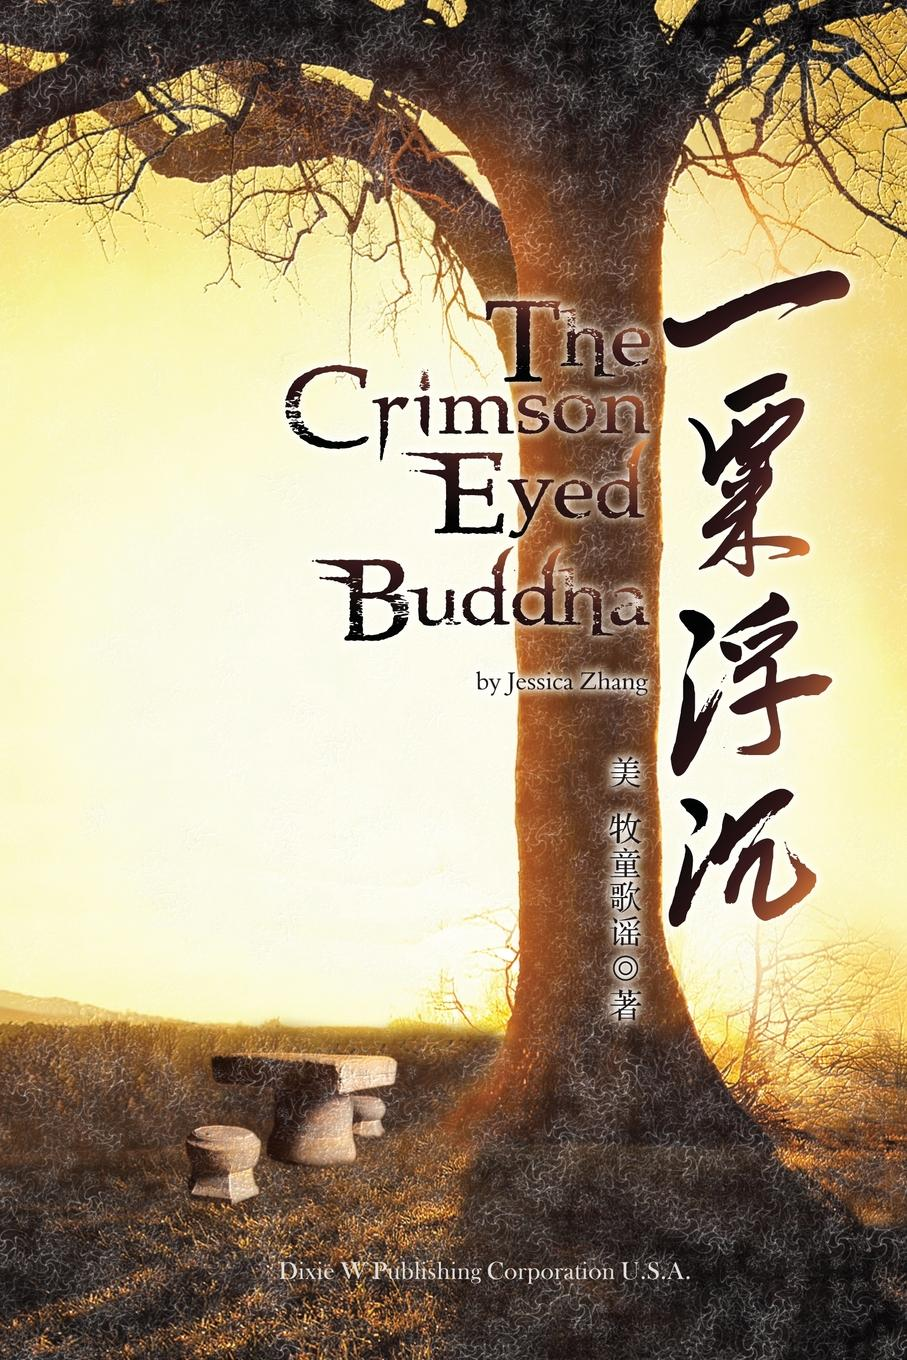 Jessica Zhang The Crimson Eyed Buddha 健康9元书系列:肾病病人生活一点通